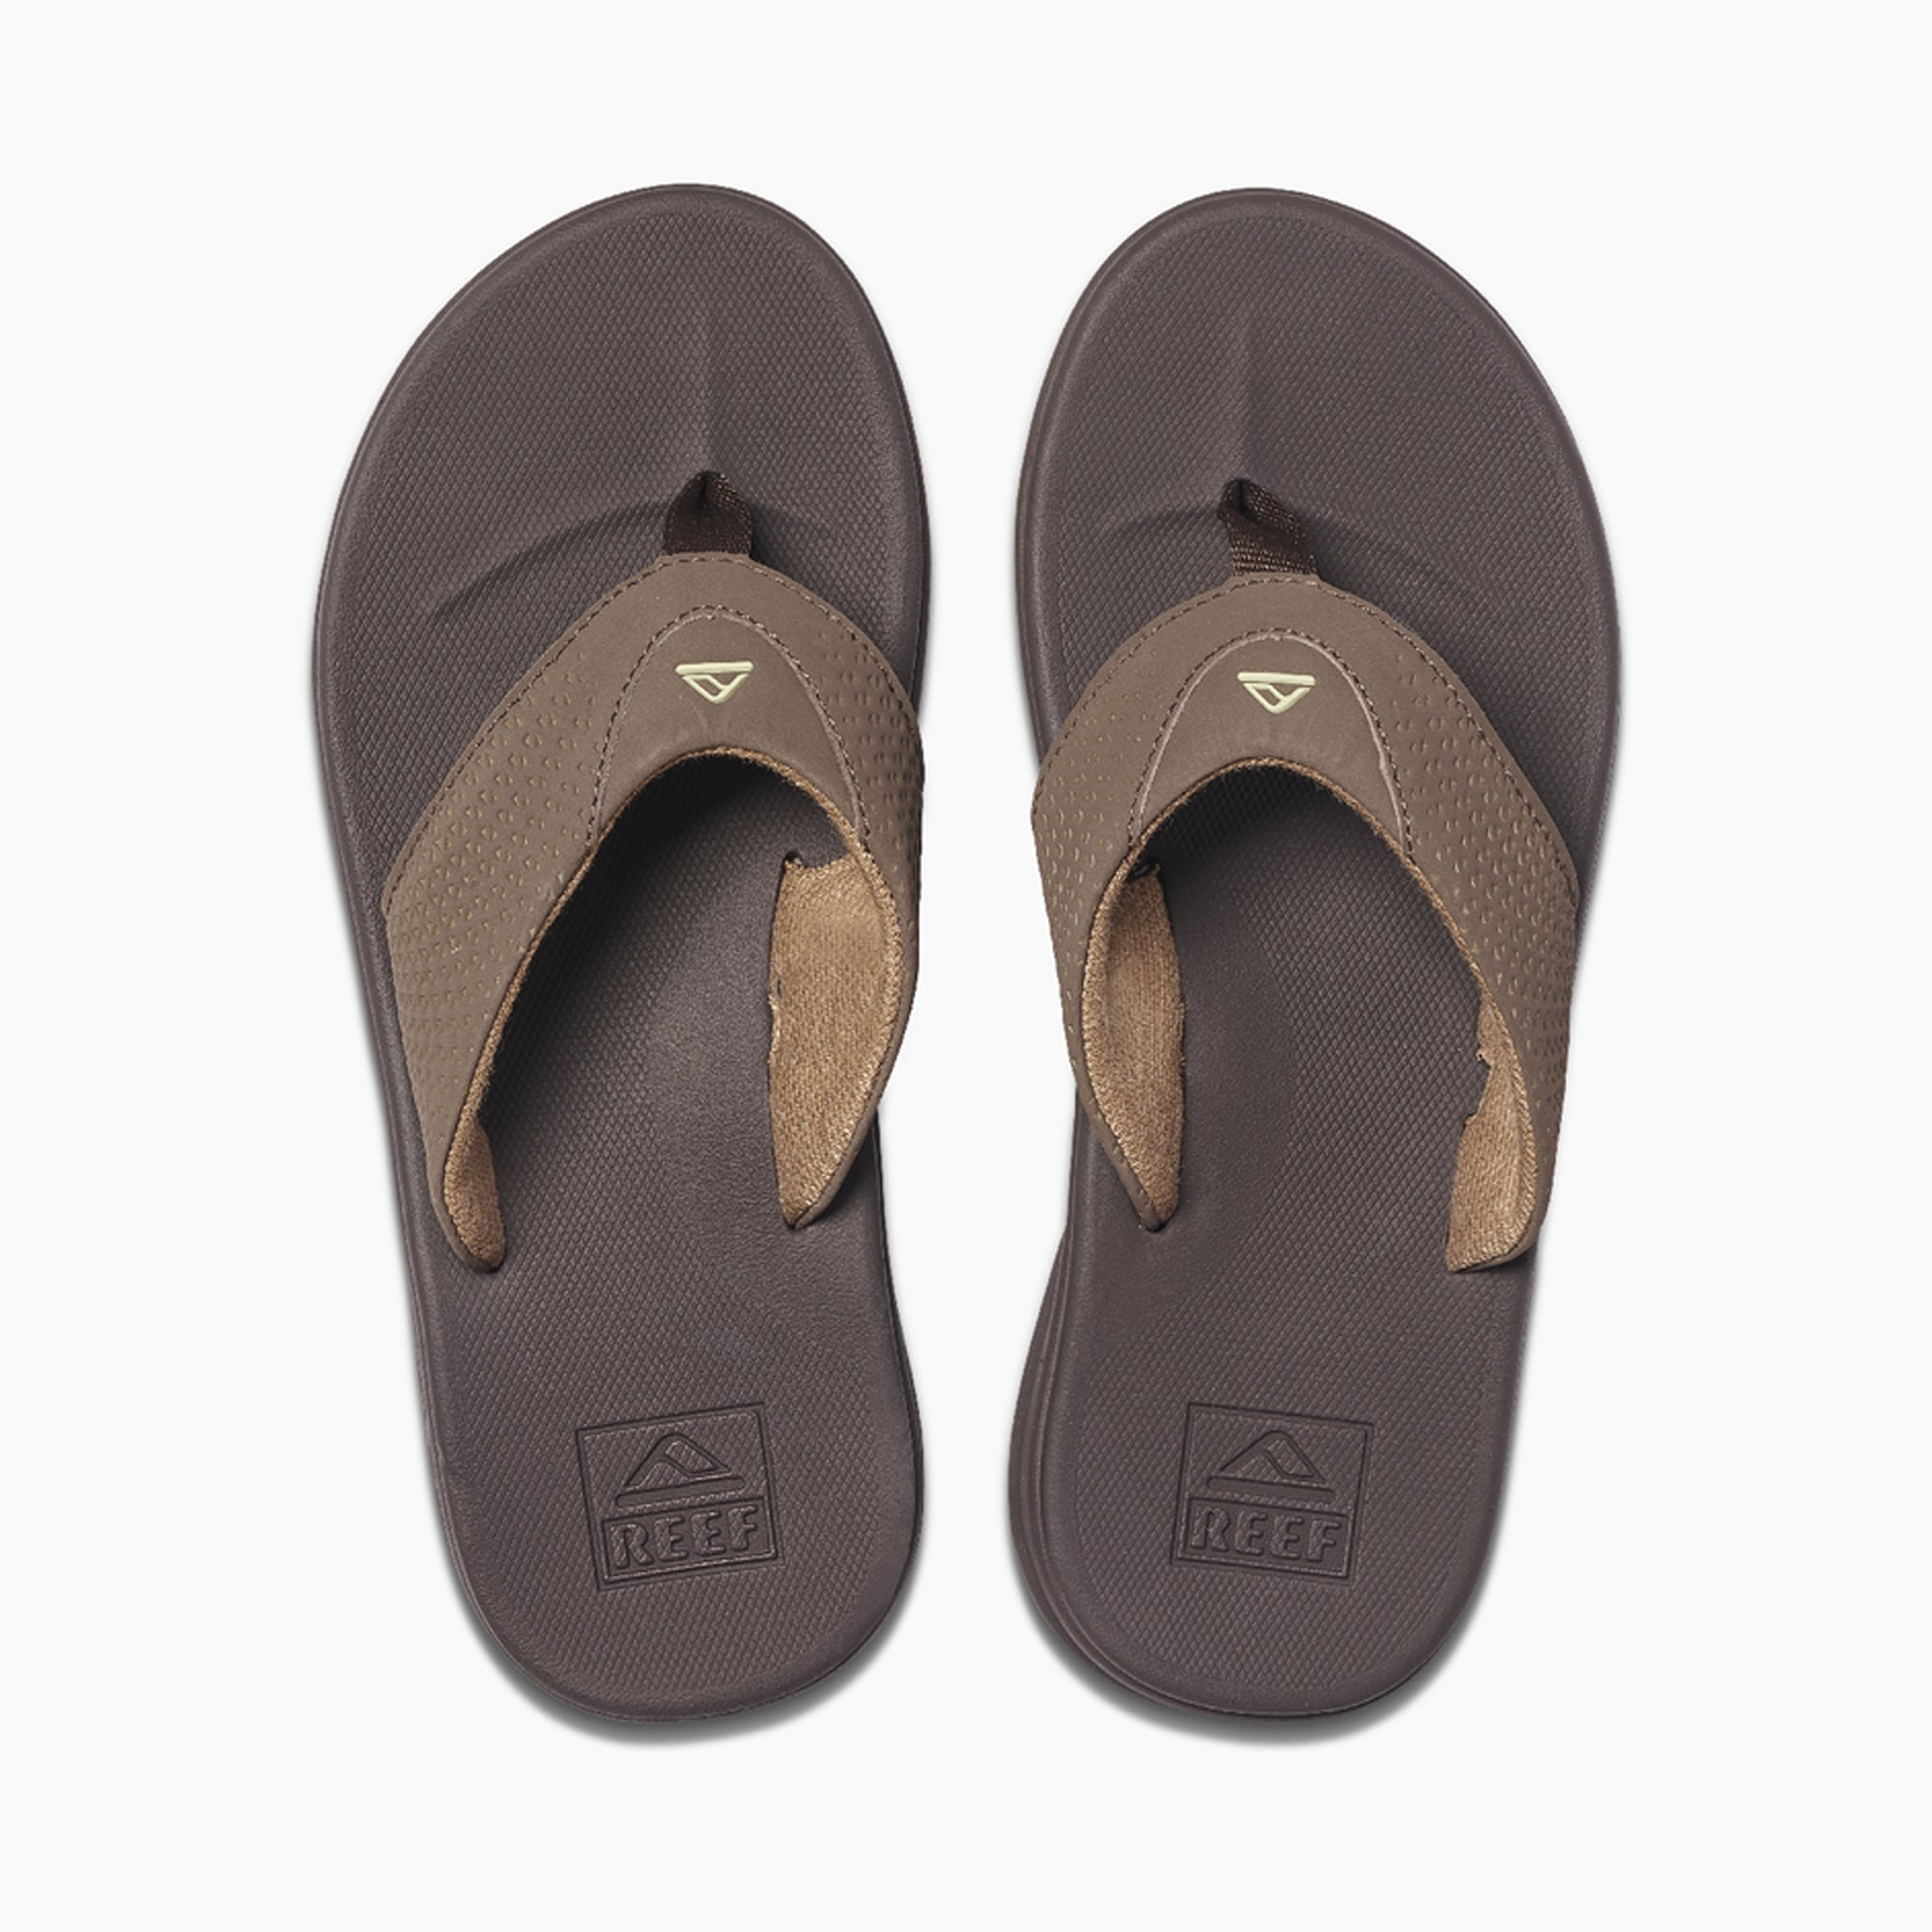 Reef Rover Men's Sandals